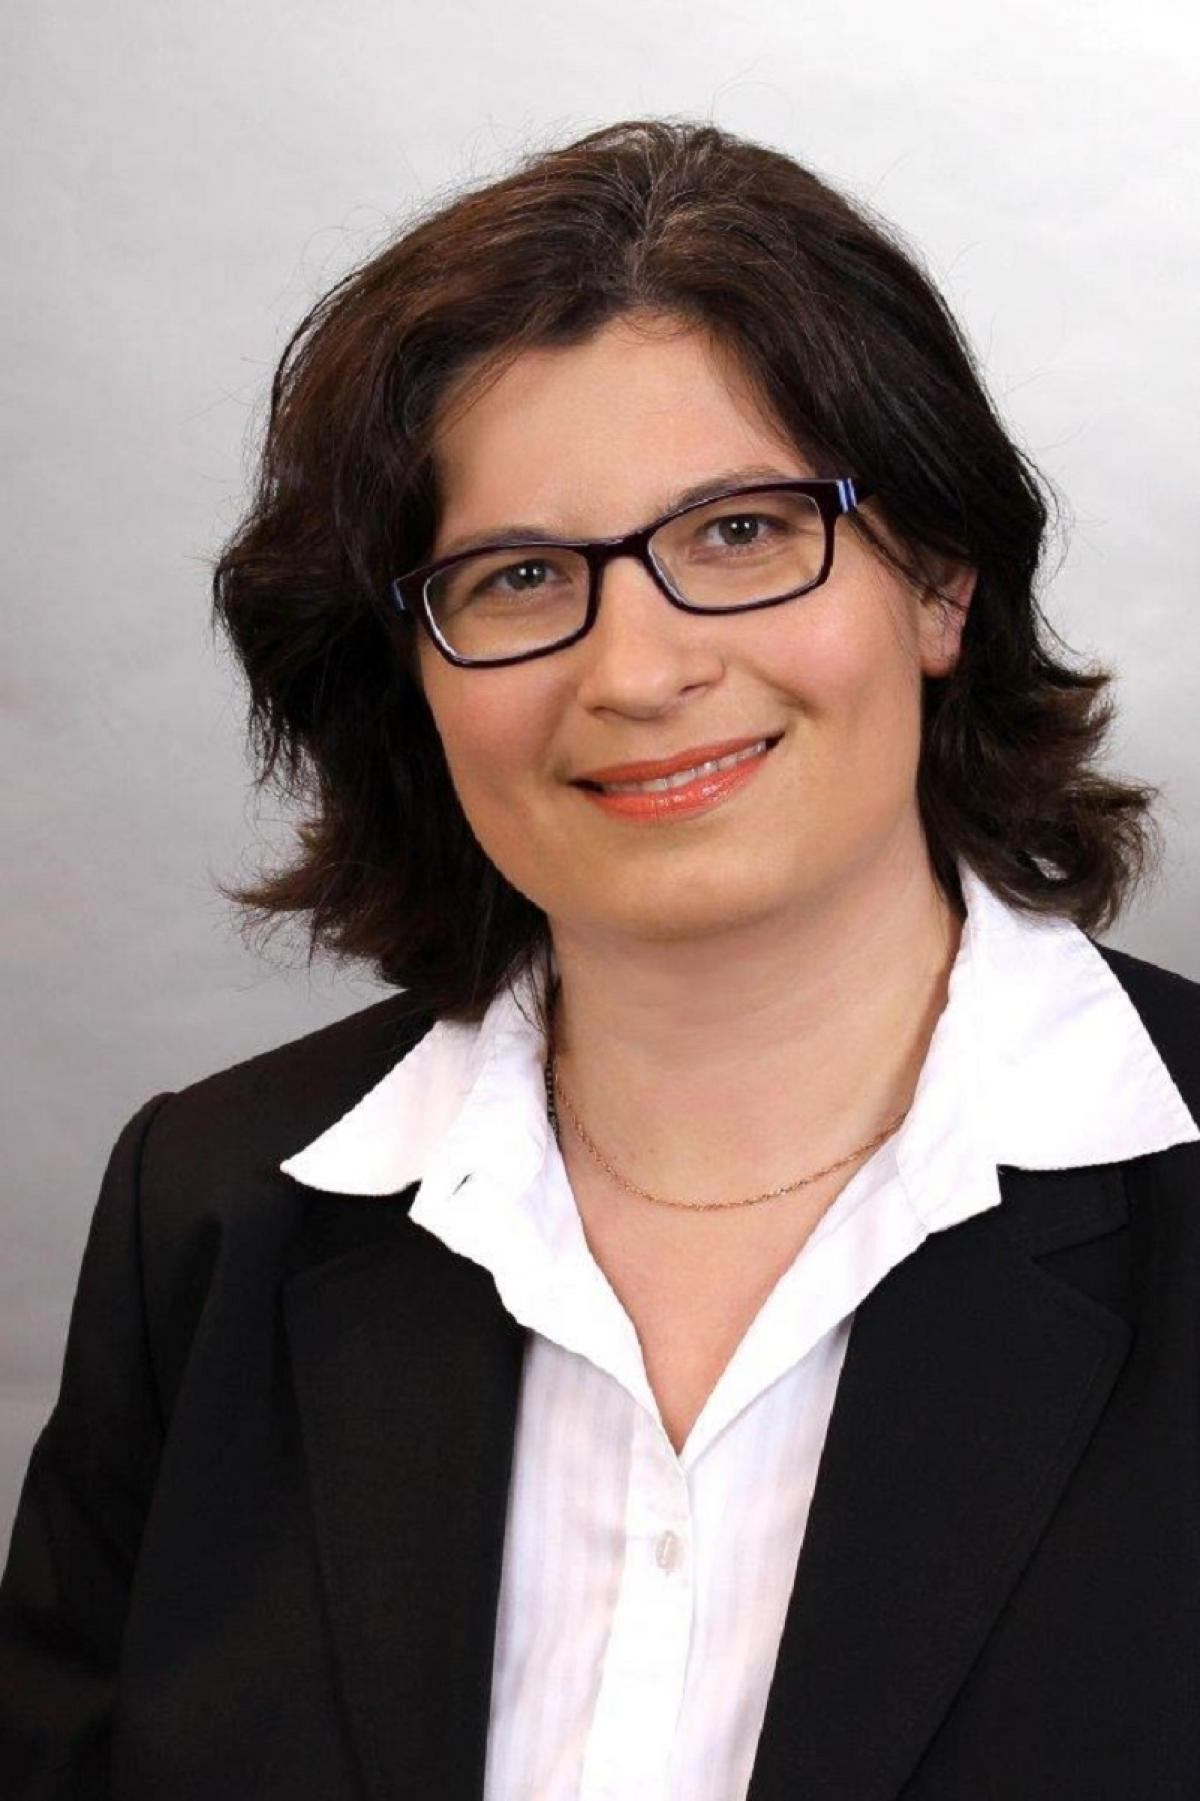 Erika Bellmann, Climate and Energy Expert at WWF Germany